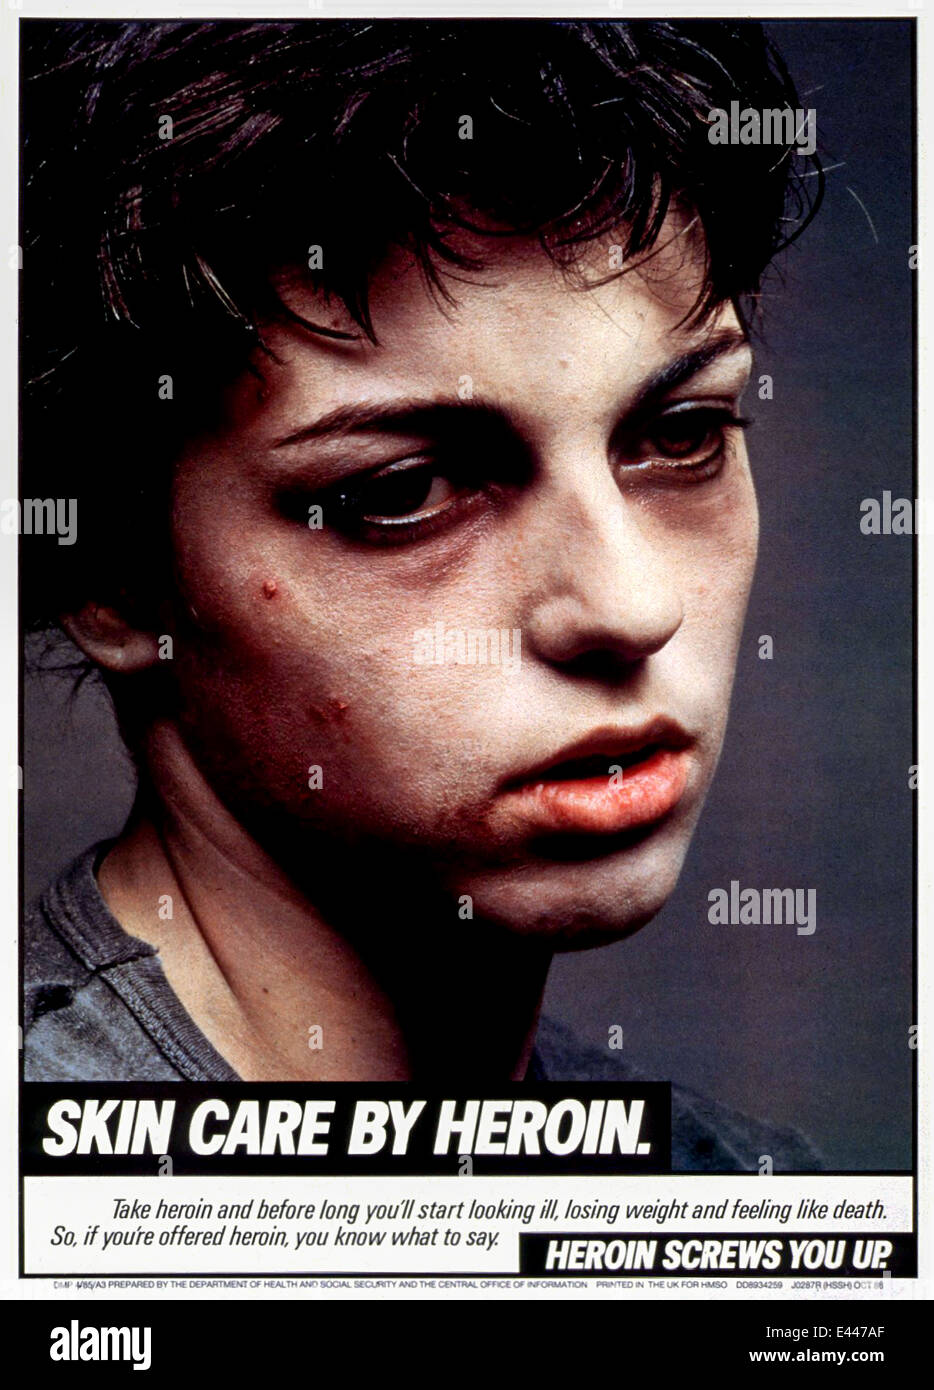 """""""Skin Care by Heroin."""" Part of the """"Heroin Screws You Up"""" drug awareness campaign. 1986 poster featuring a young Stock Photo"""